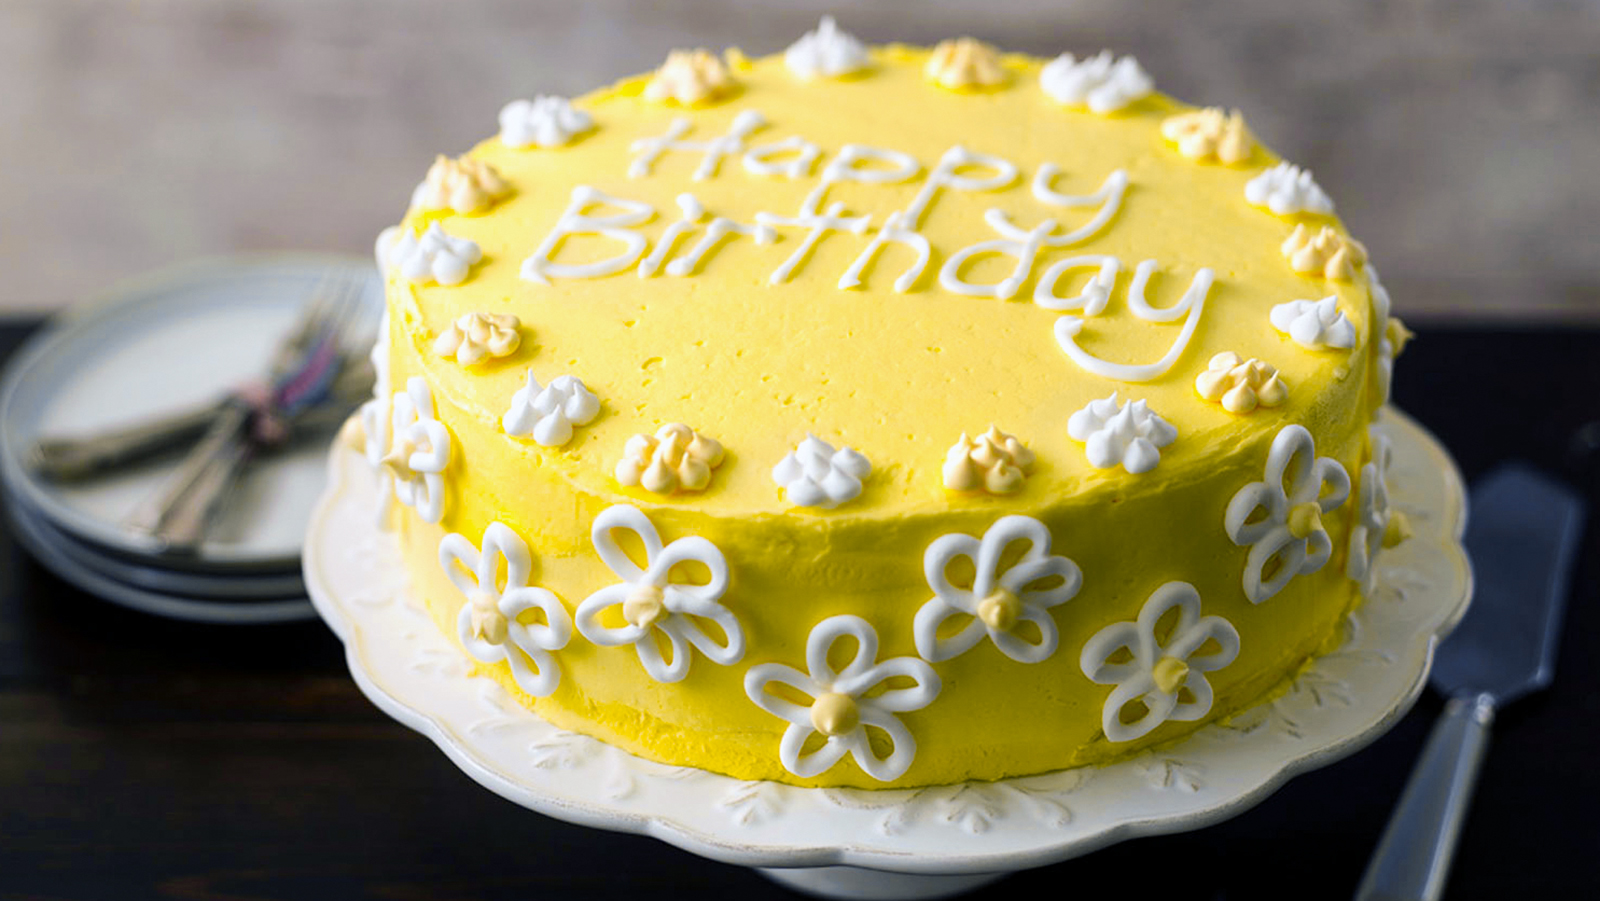 Tremendous Flowery Birthday Cake Recipe Bbc Food Funny Birthday Cards Online Barepcheapnameinfo